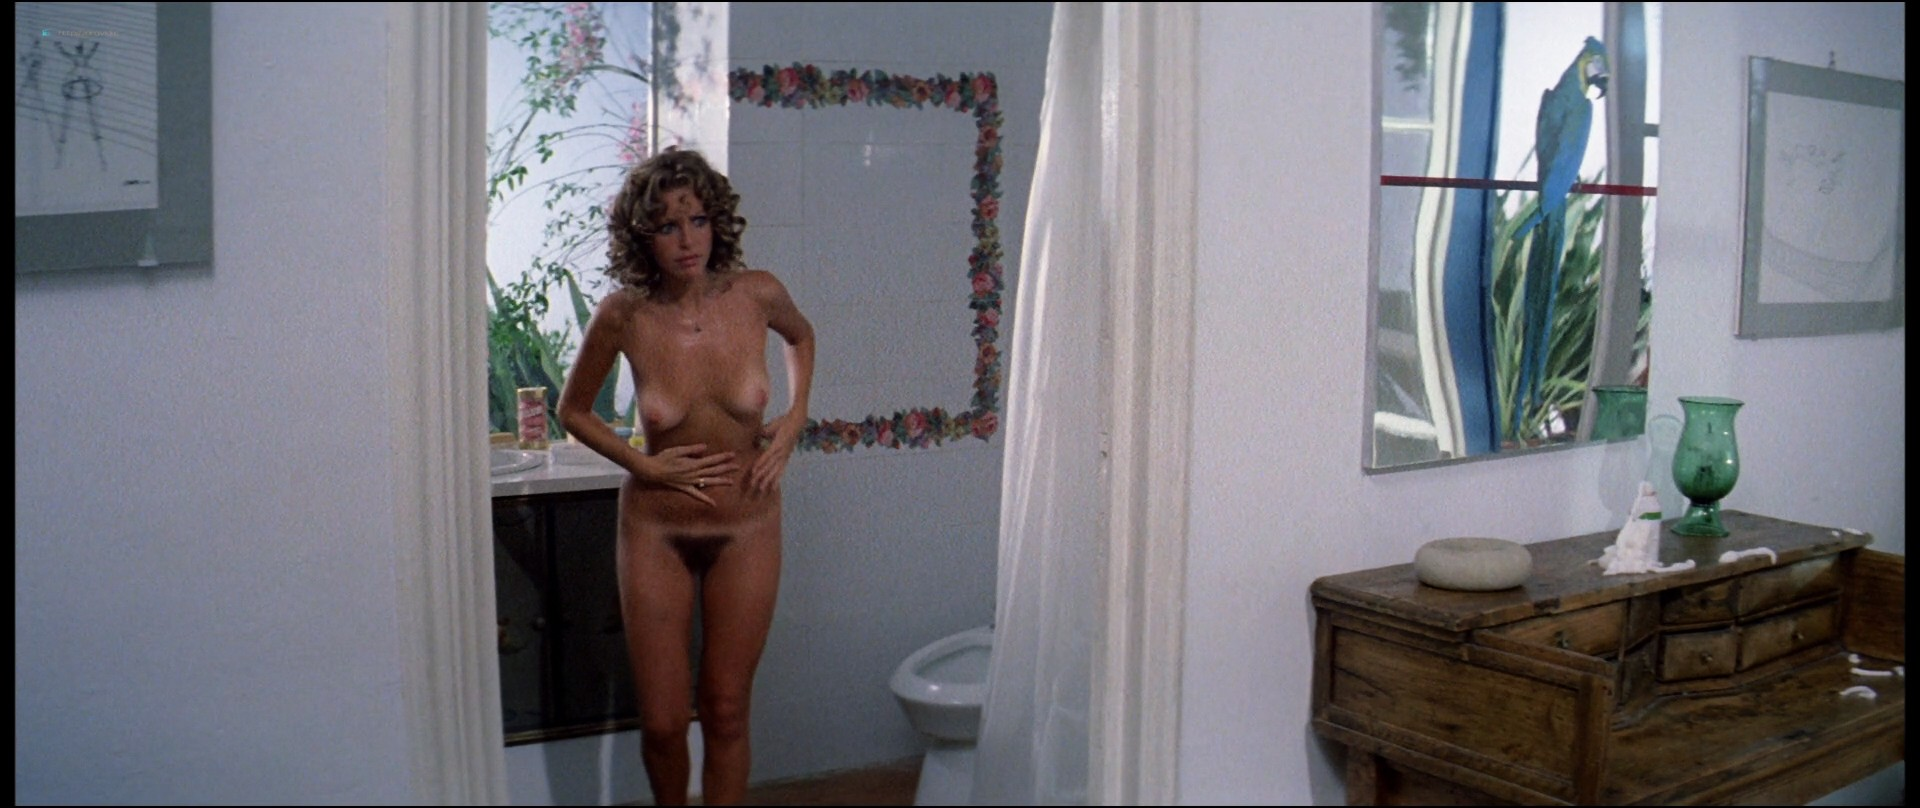 Sydne Rome nude full frontal Renate Langer, Birgitta Nilsson nude too - What? (IT-1972) 1080p BluRay (11)